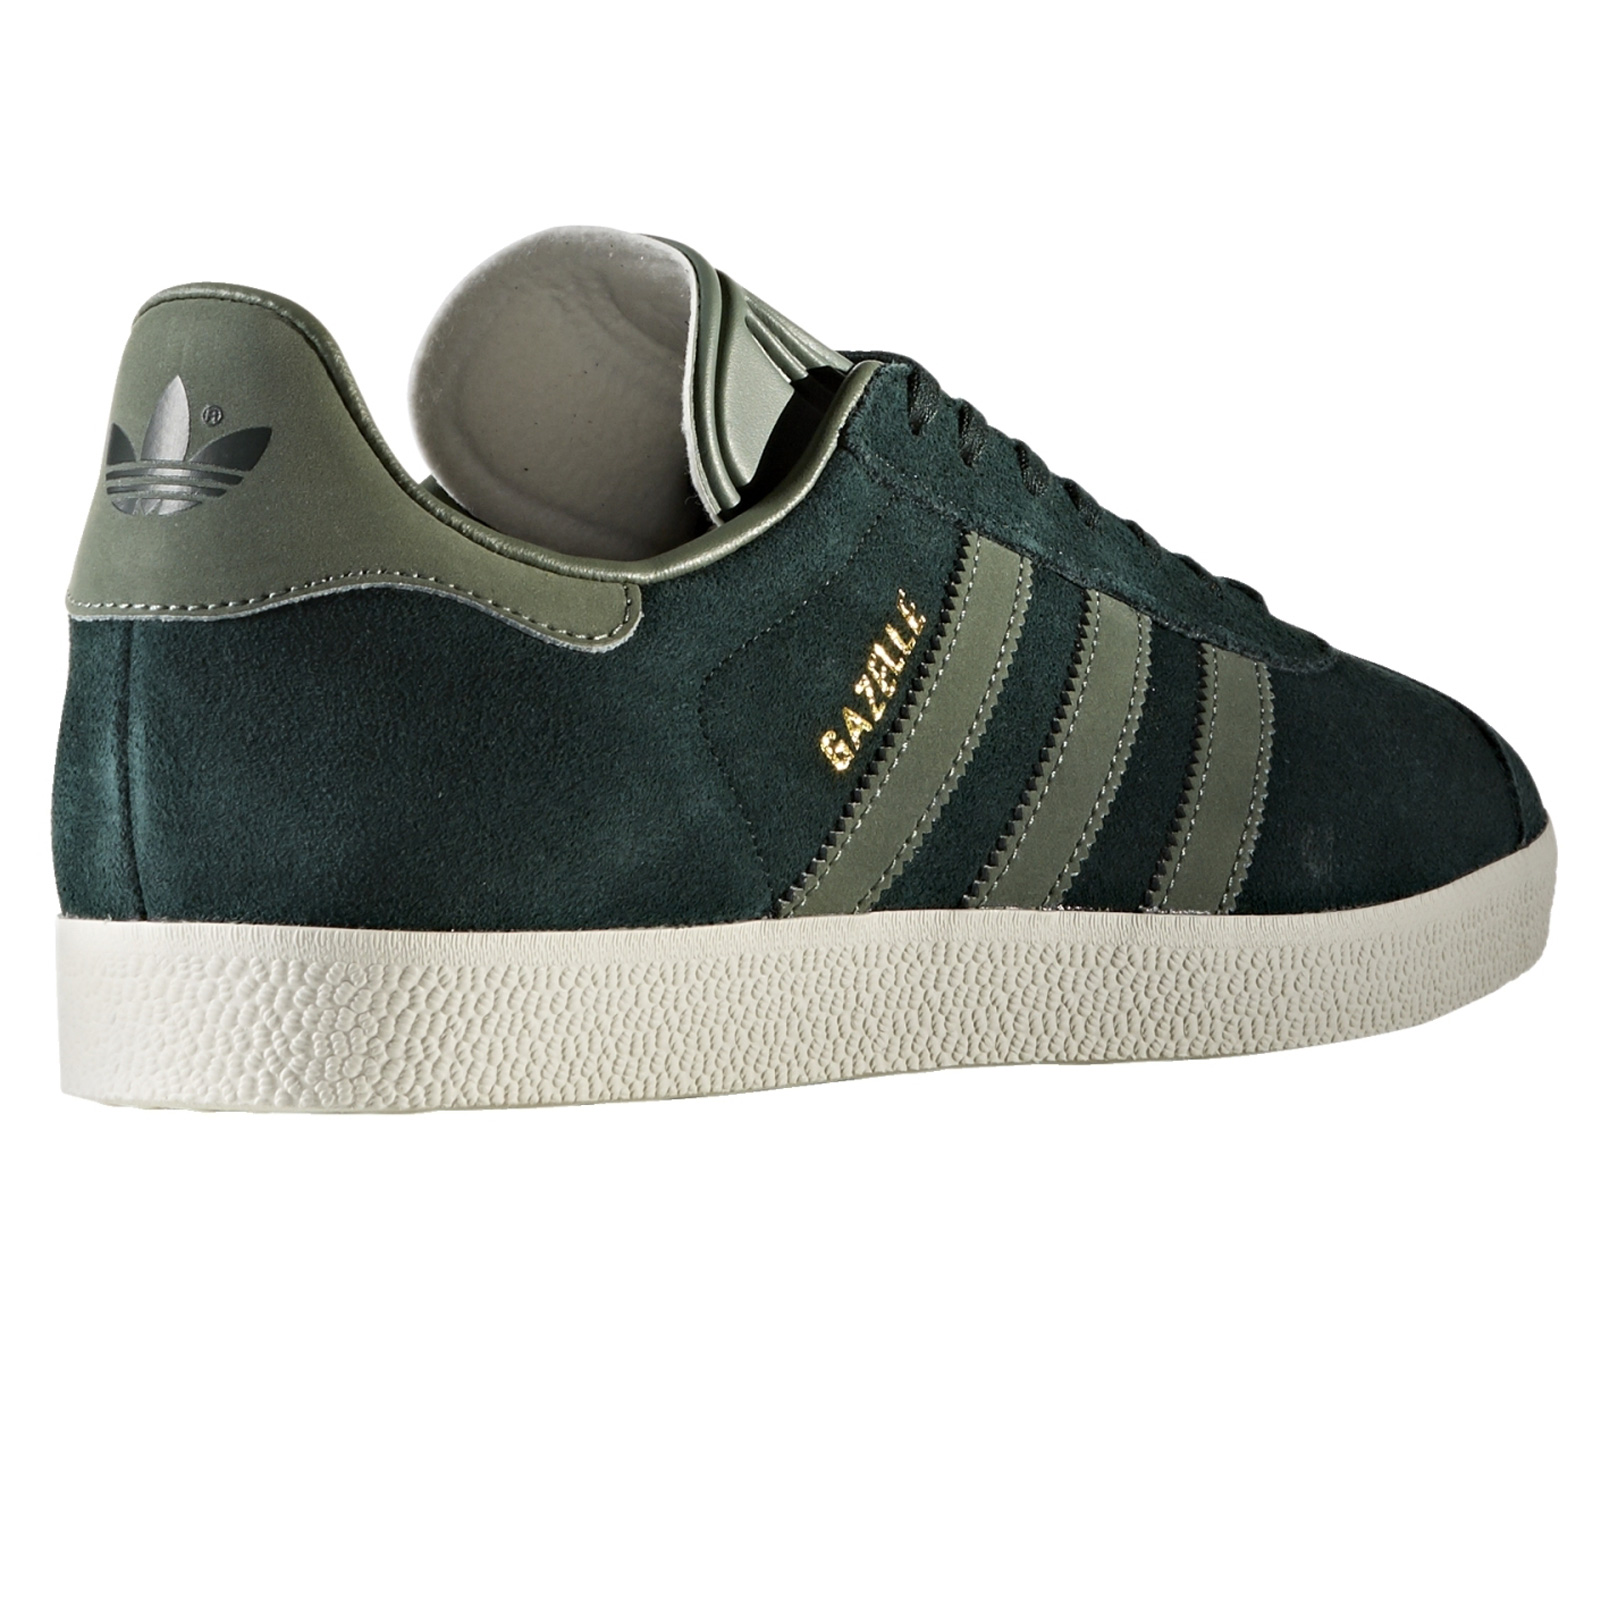 adidas Originals Gazelle Sneaker Leder Schuhe Green Night Tracegreen Grün BZ0031